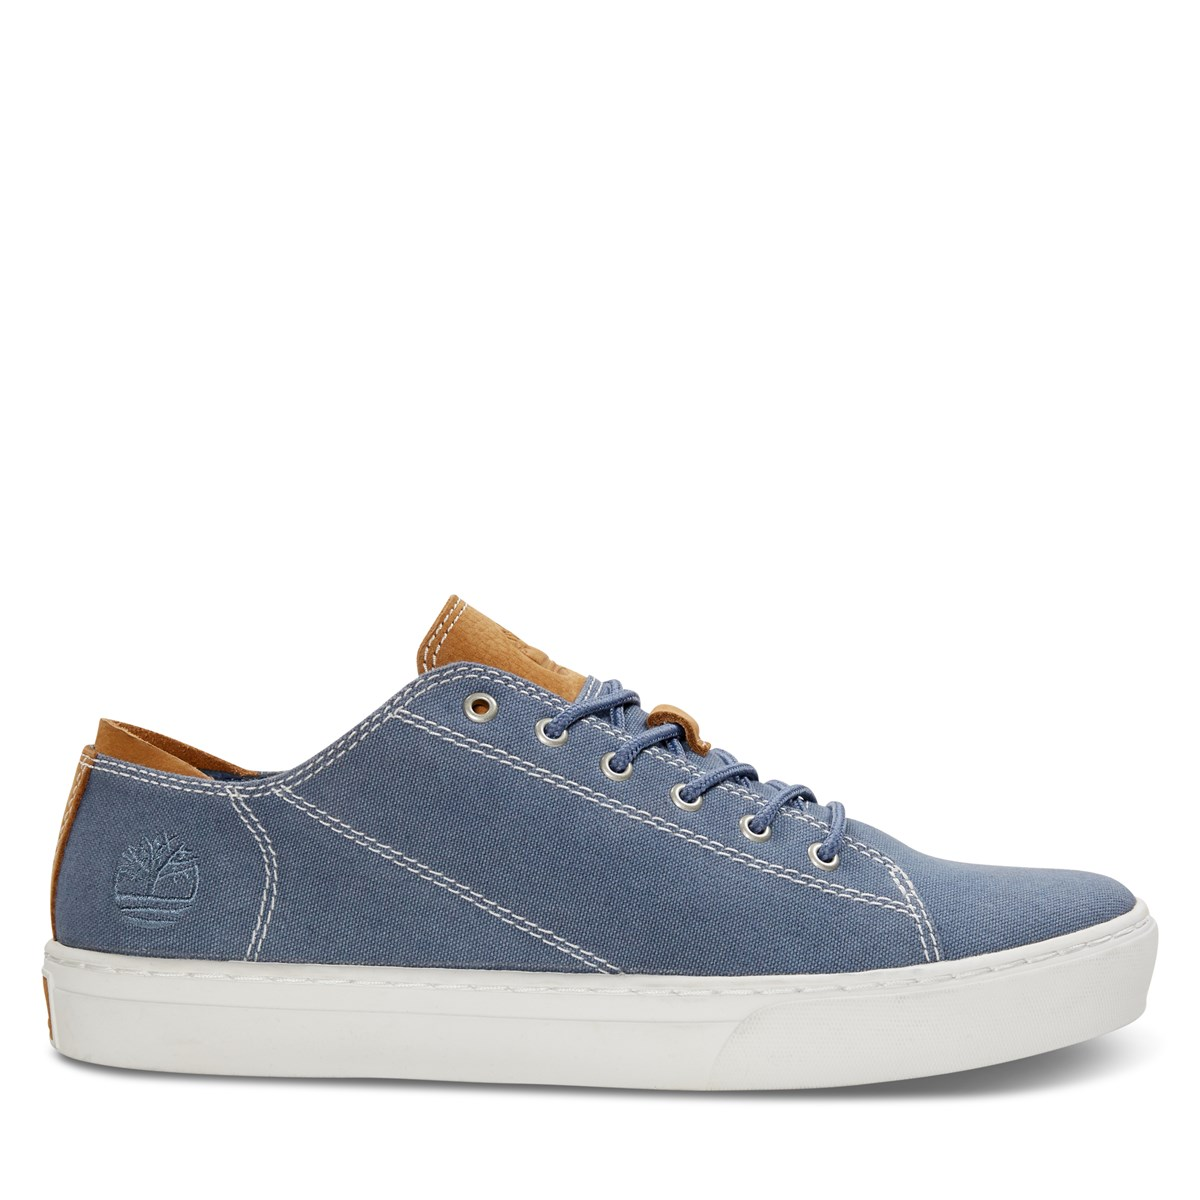 Men's Adventure 2.0 Sneaker in Blue